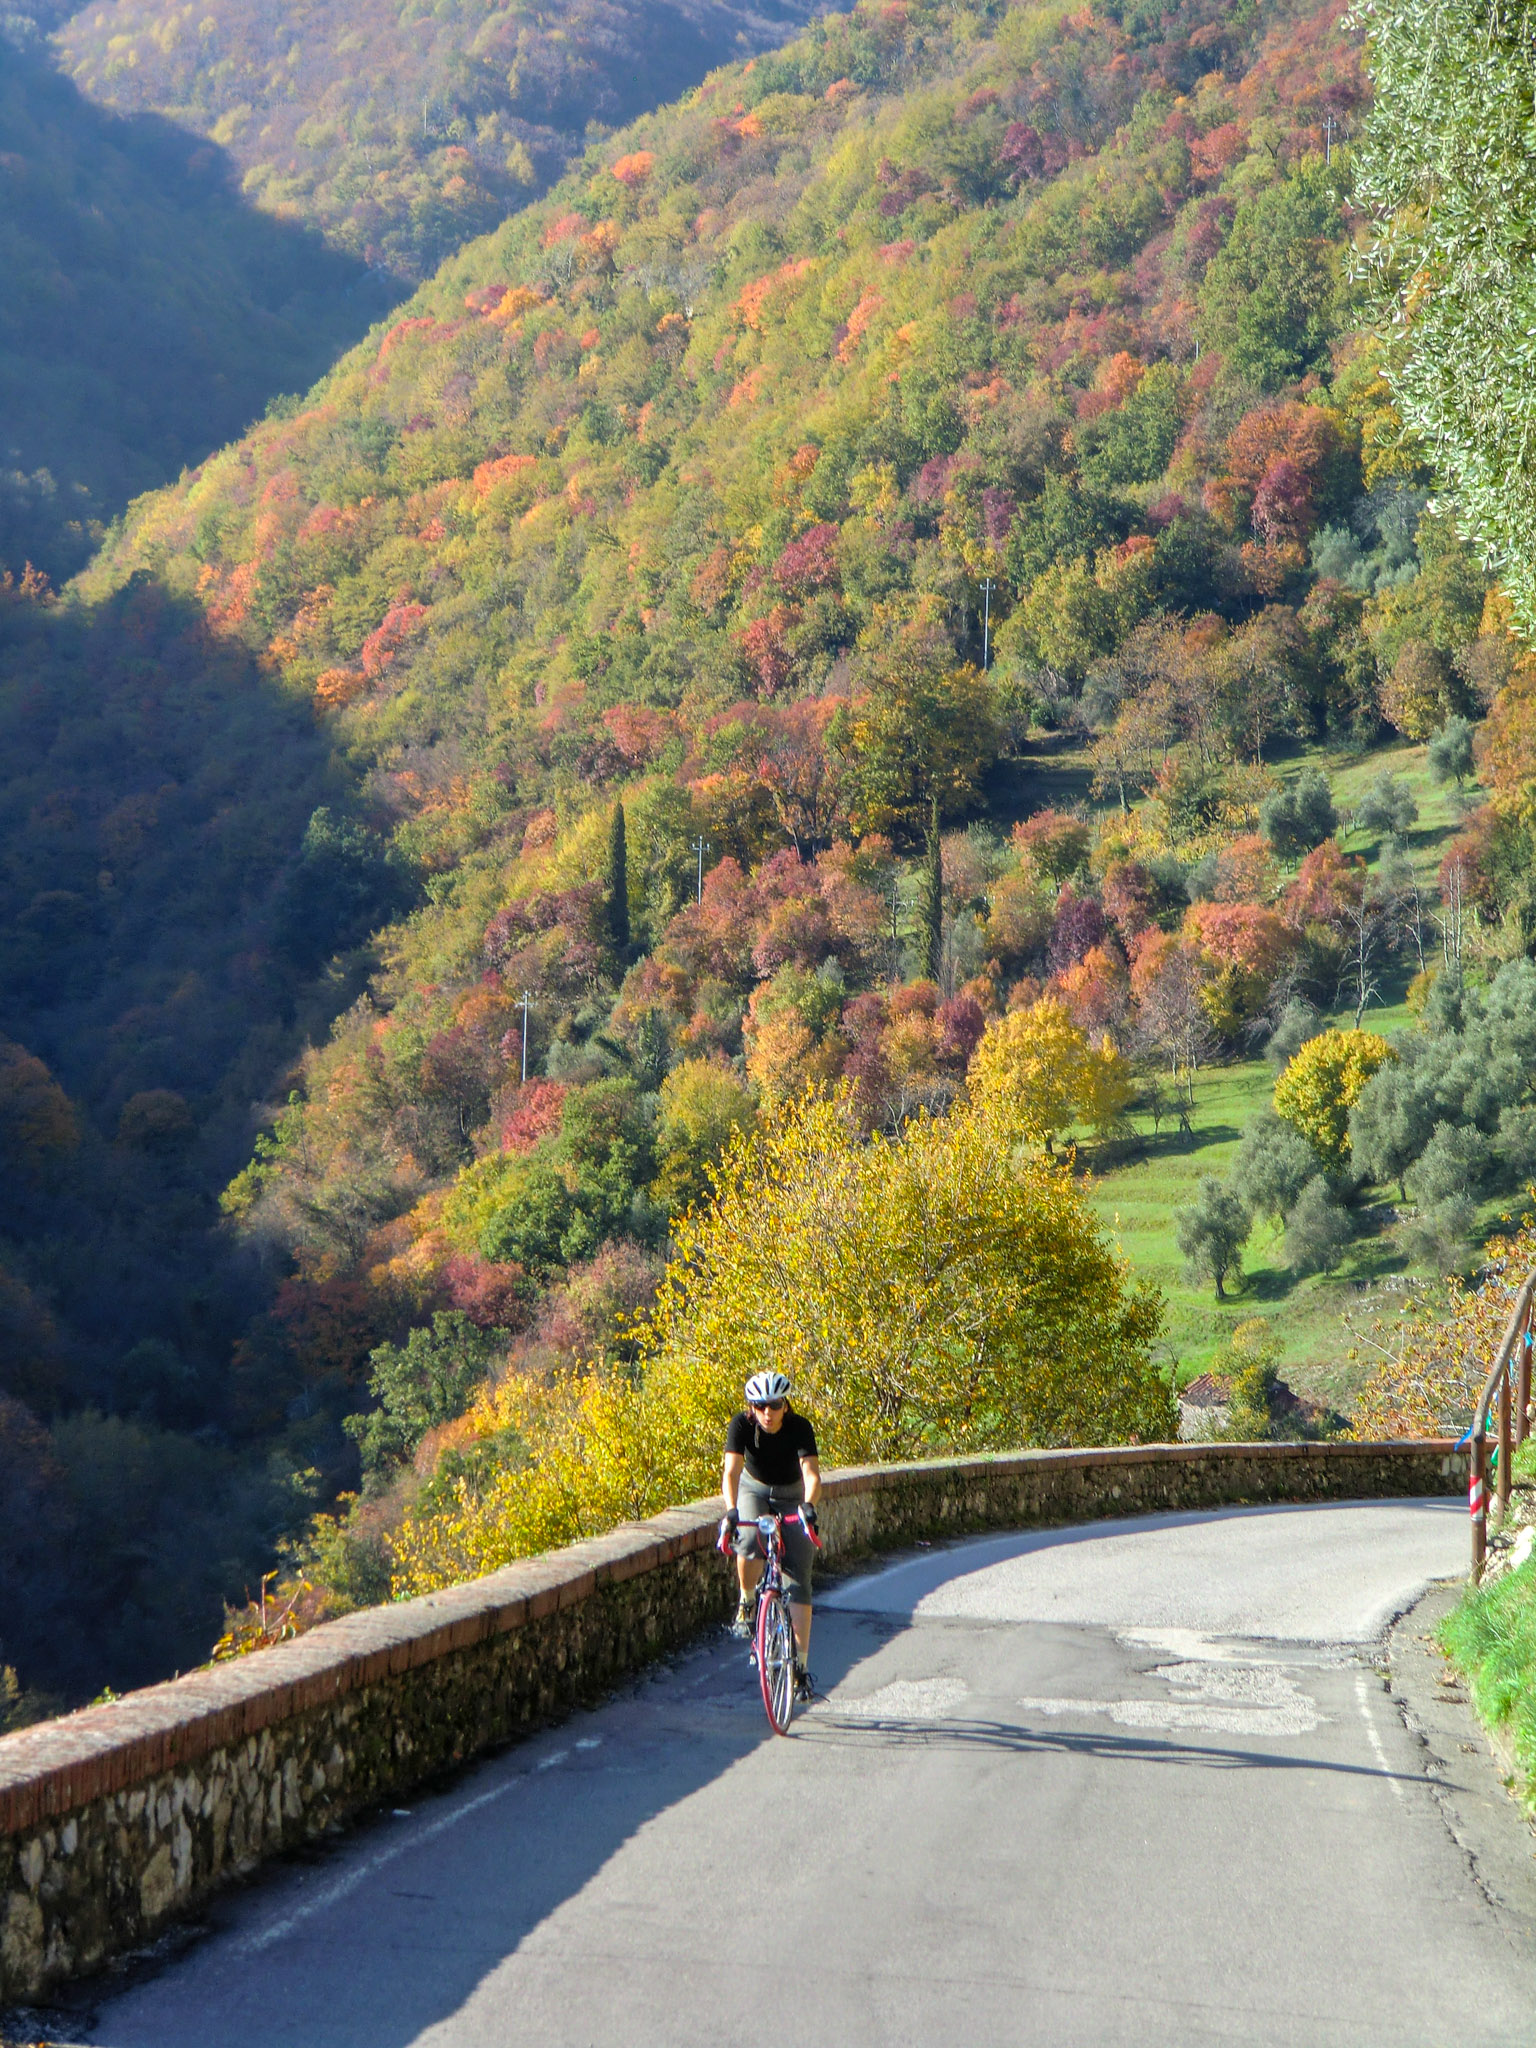 Slow ascent in Tuscan hills